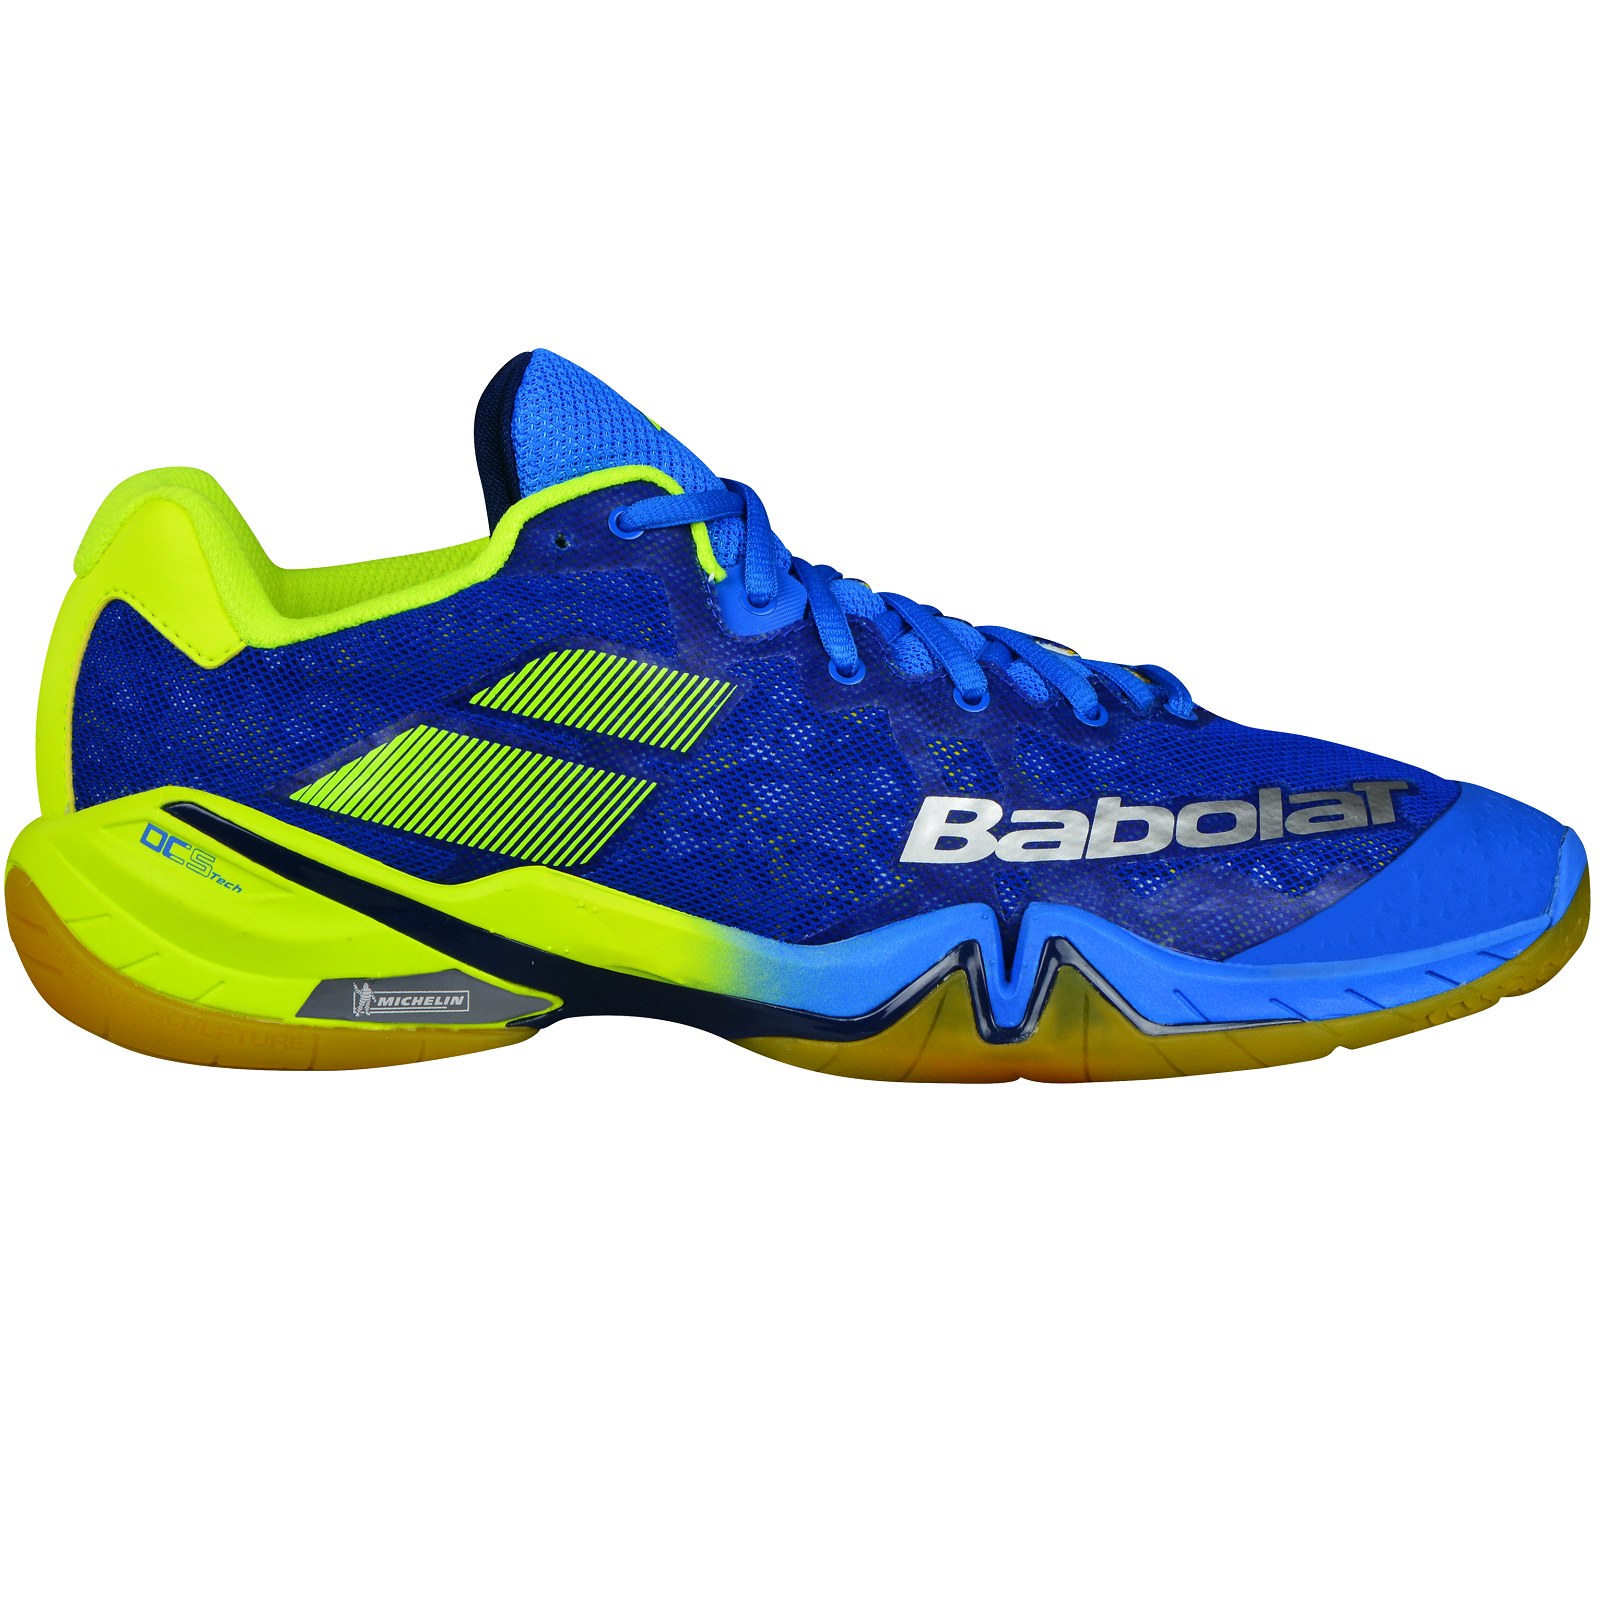 BABOLAT SHADOW TOUR 2019 40.5-49 NEU  badmintonschuhe team spirit propulse